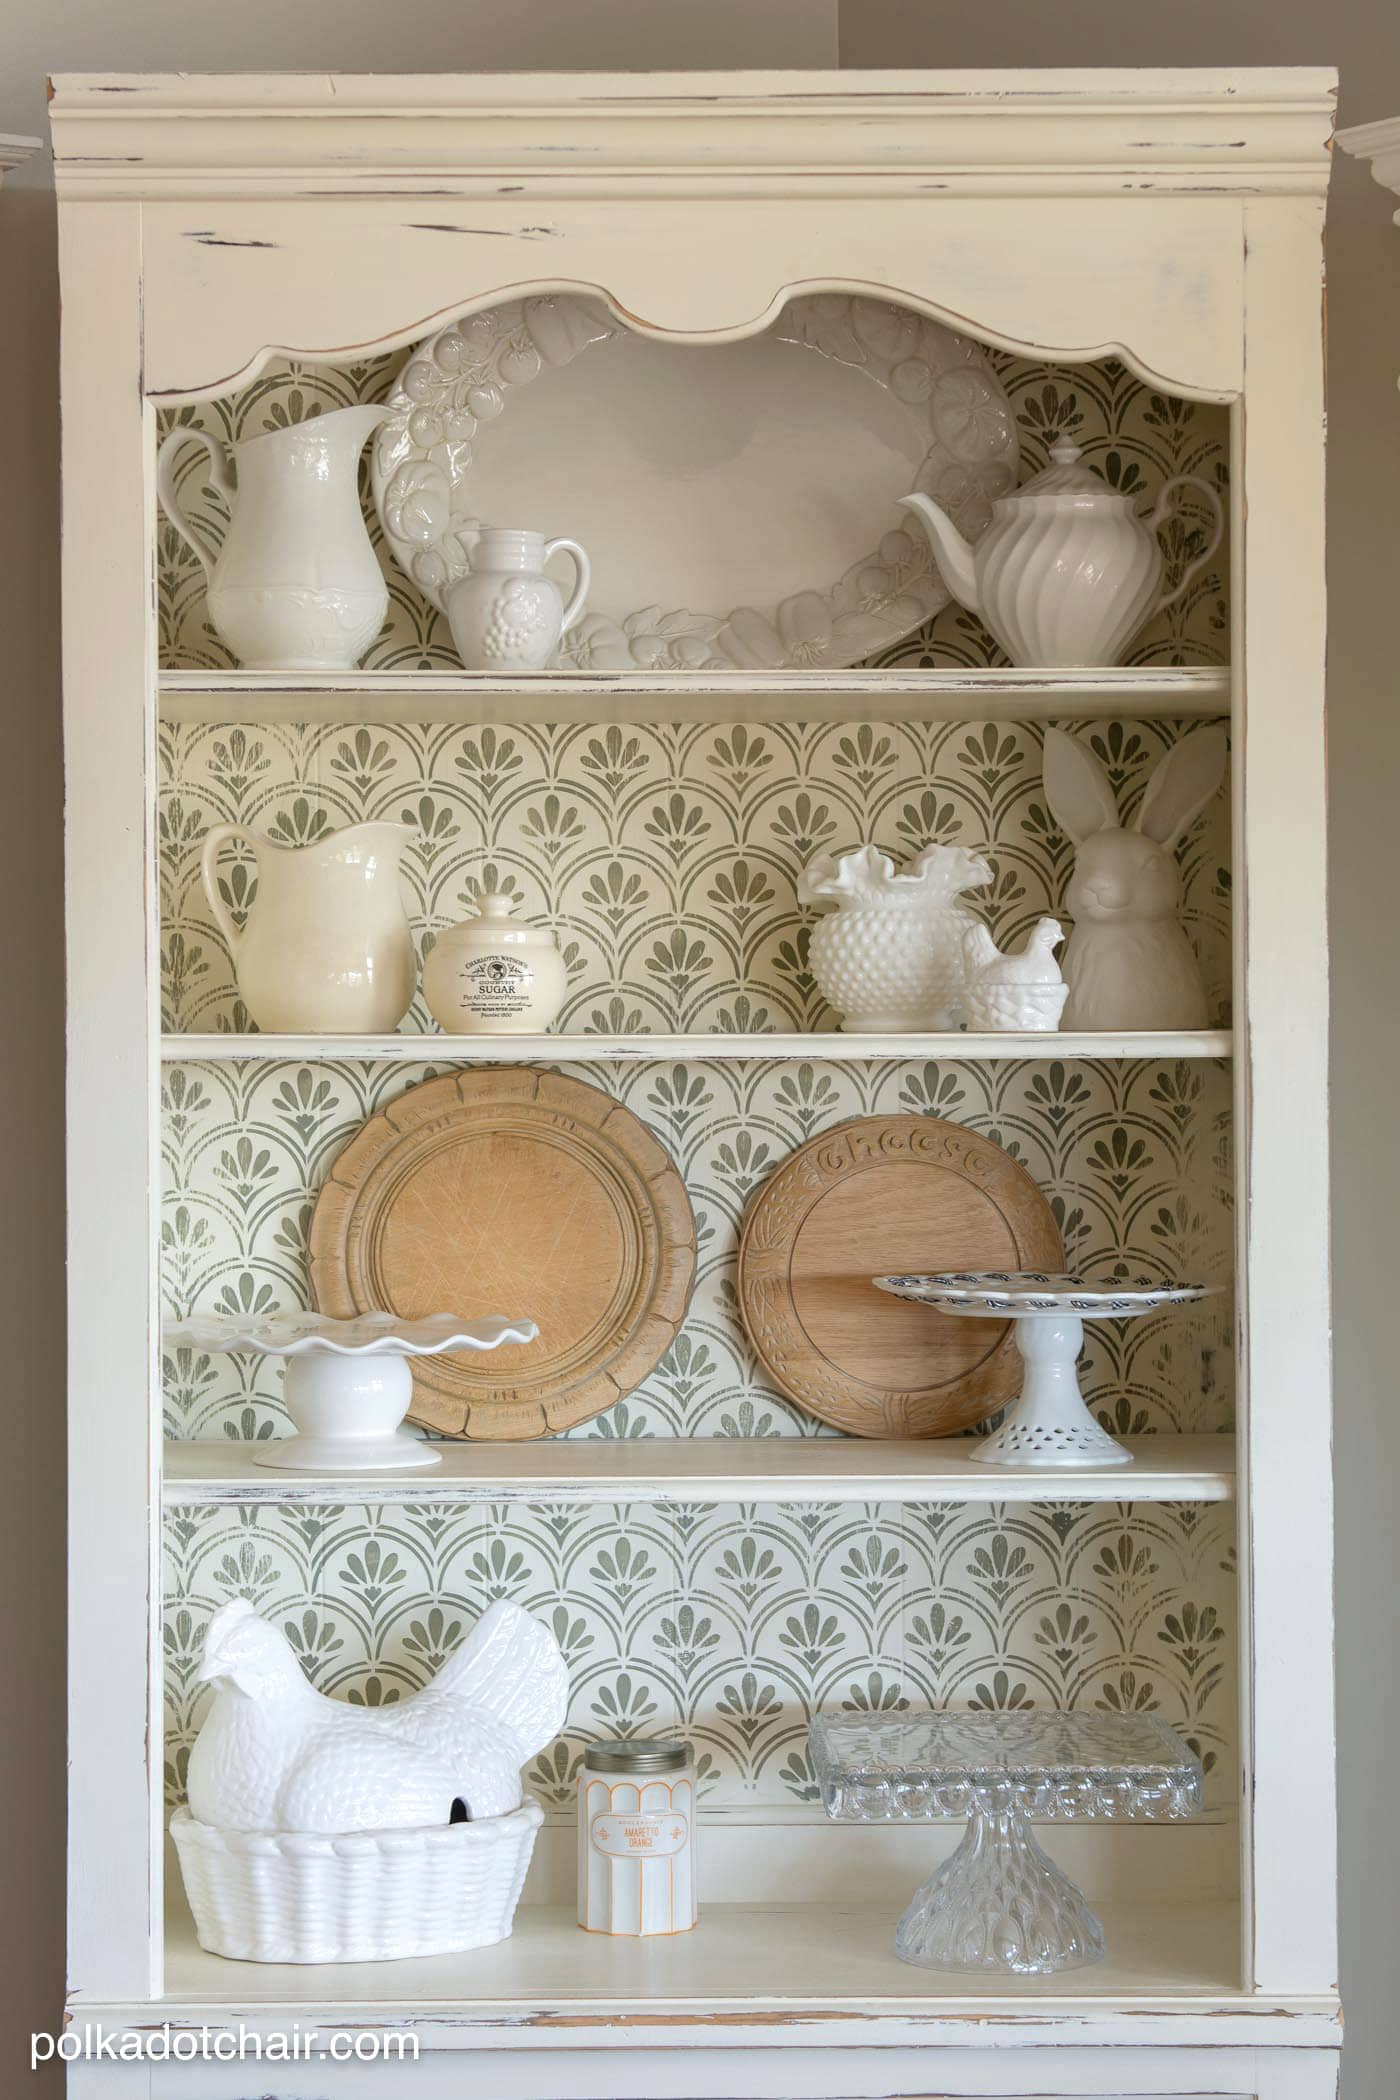 DIY Stenciled Bookcase Project, she painted the bookcase with chalk paint then stenciled a pattern onto the back, looks pretty simple